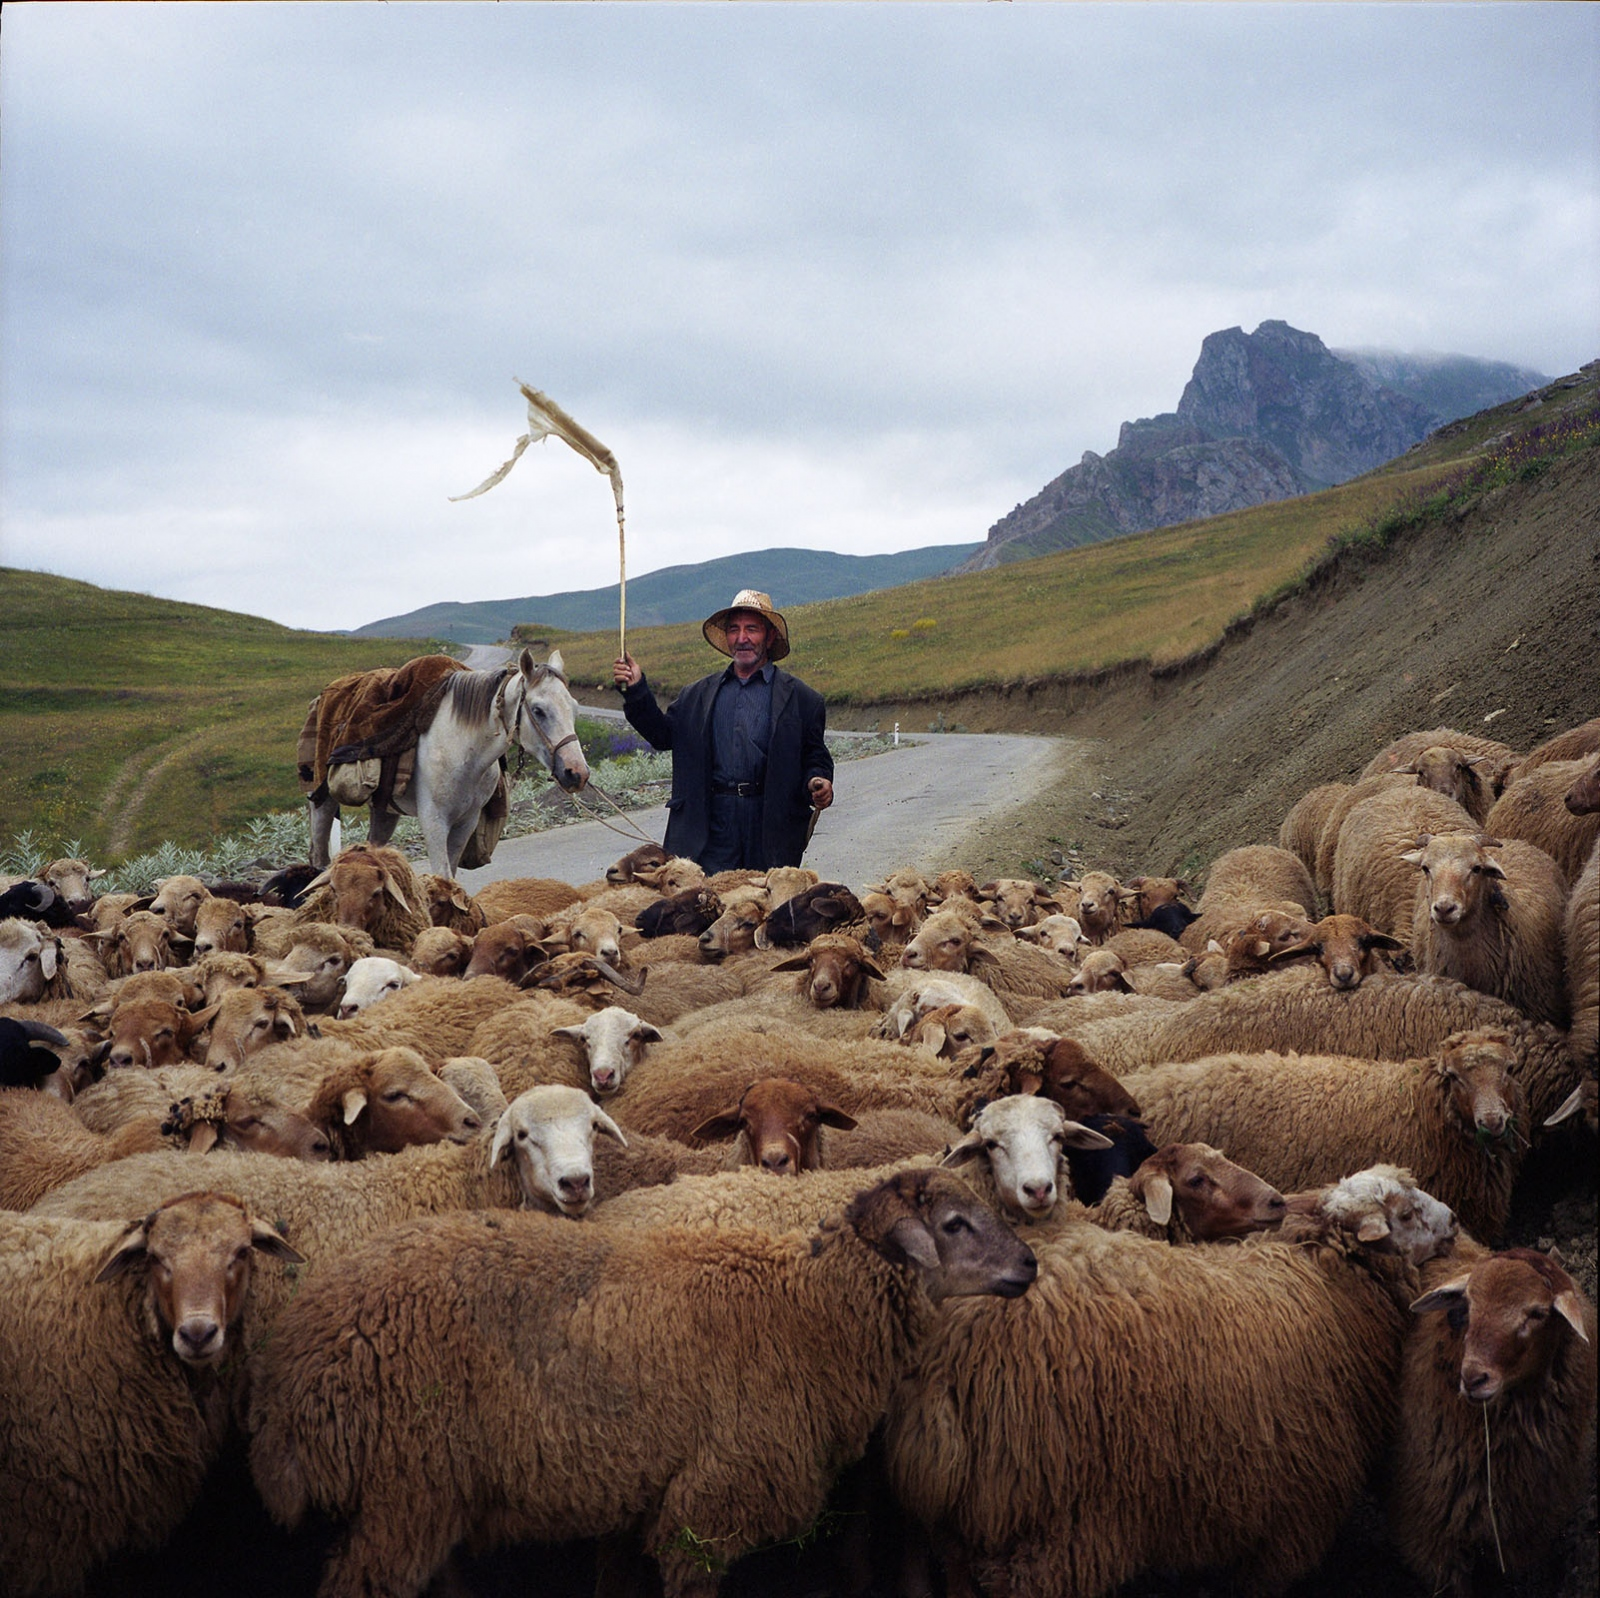 Shepherd on the way to the village. Khinaliq, Azerbaijan. 2009